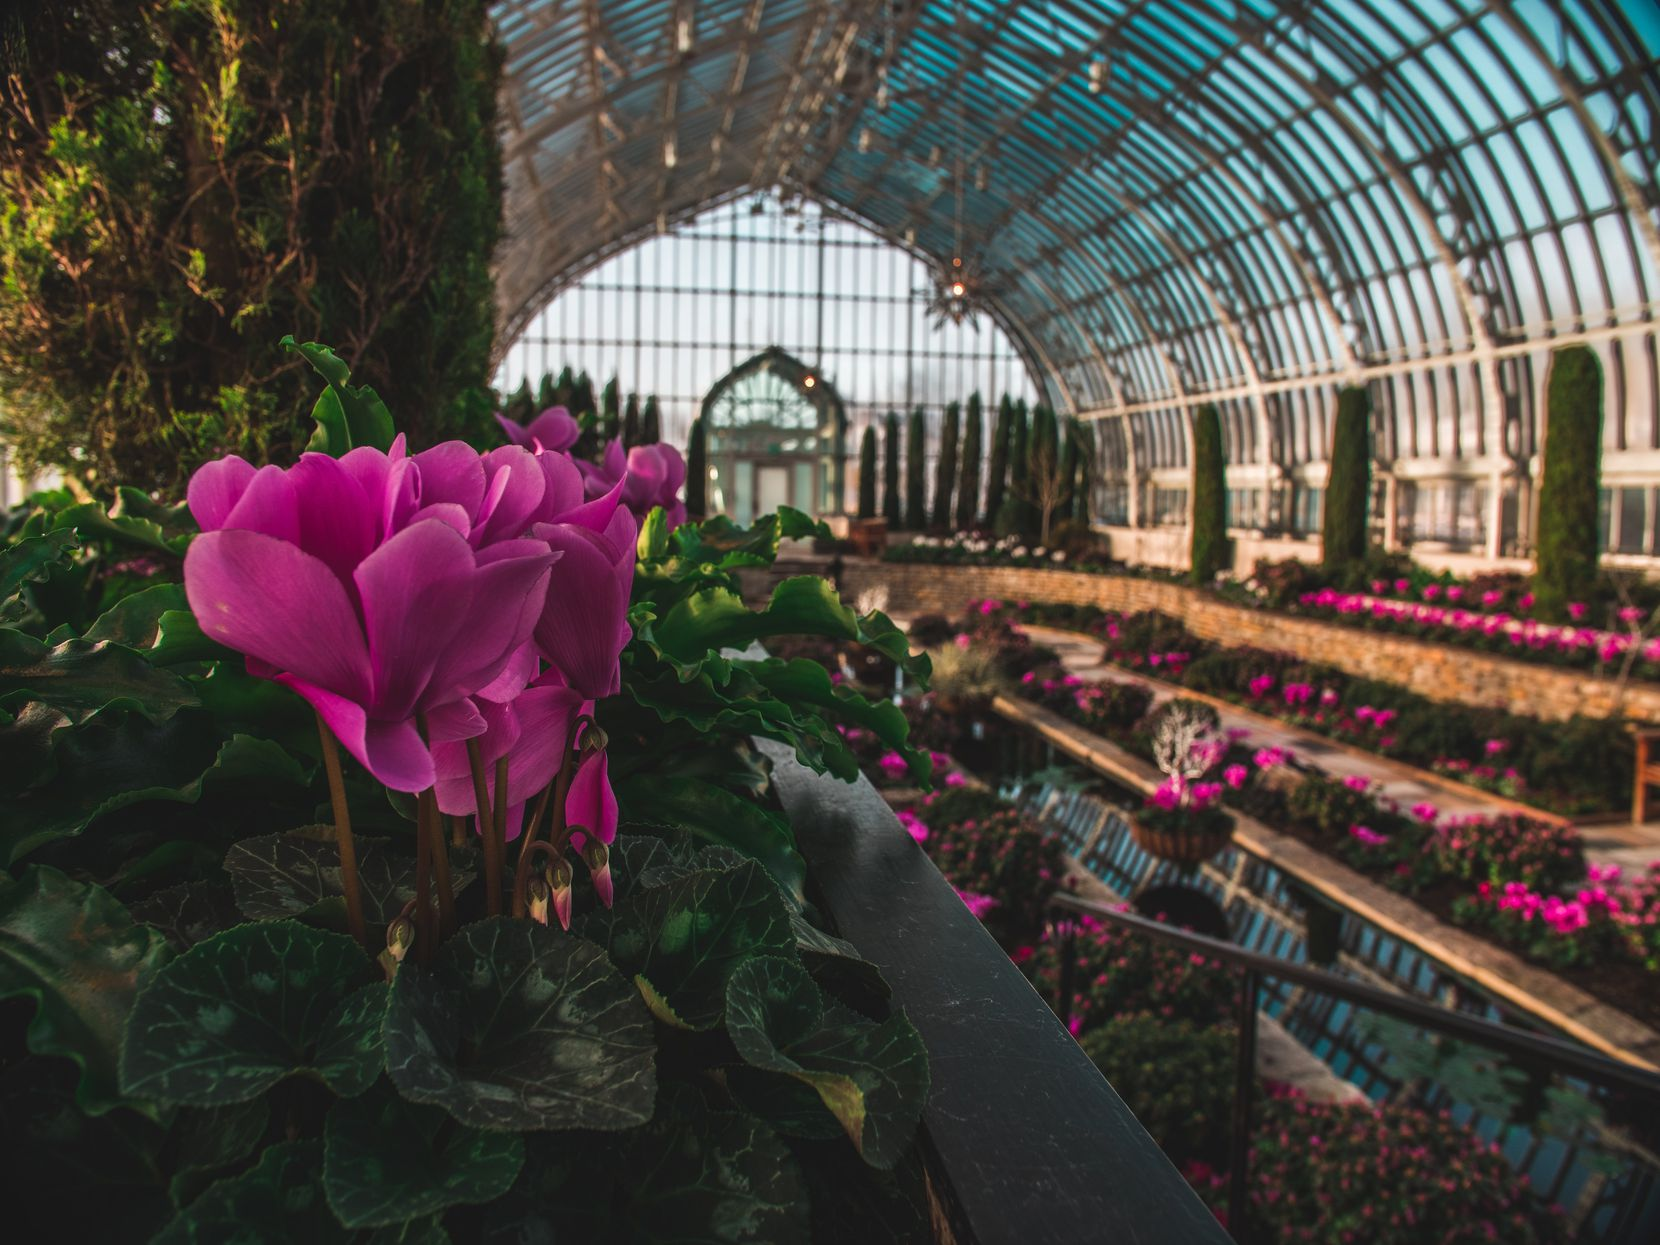 The Como Park Zoo and Conservatory displays bold colors at its winter flower show.